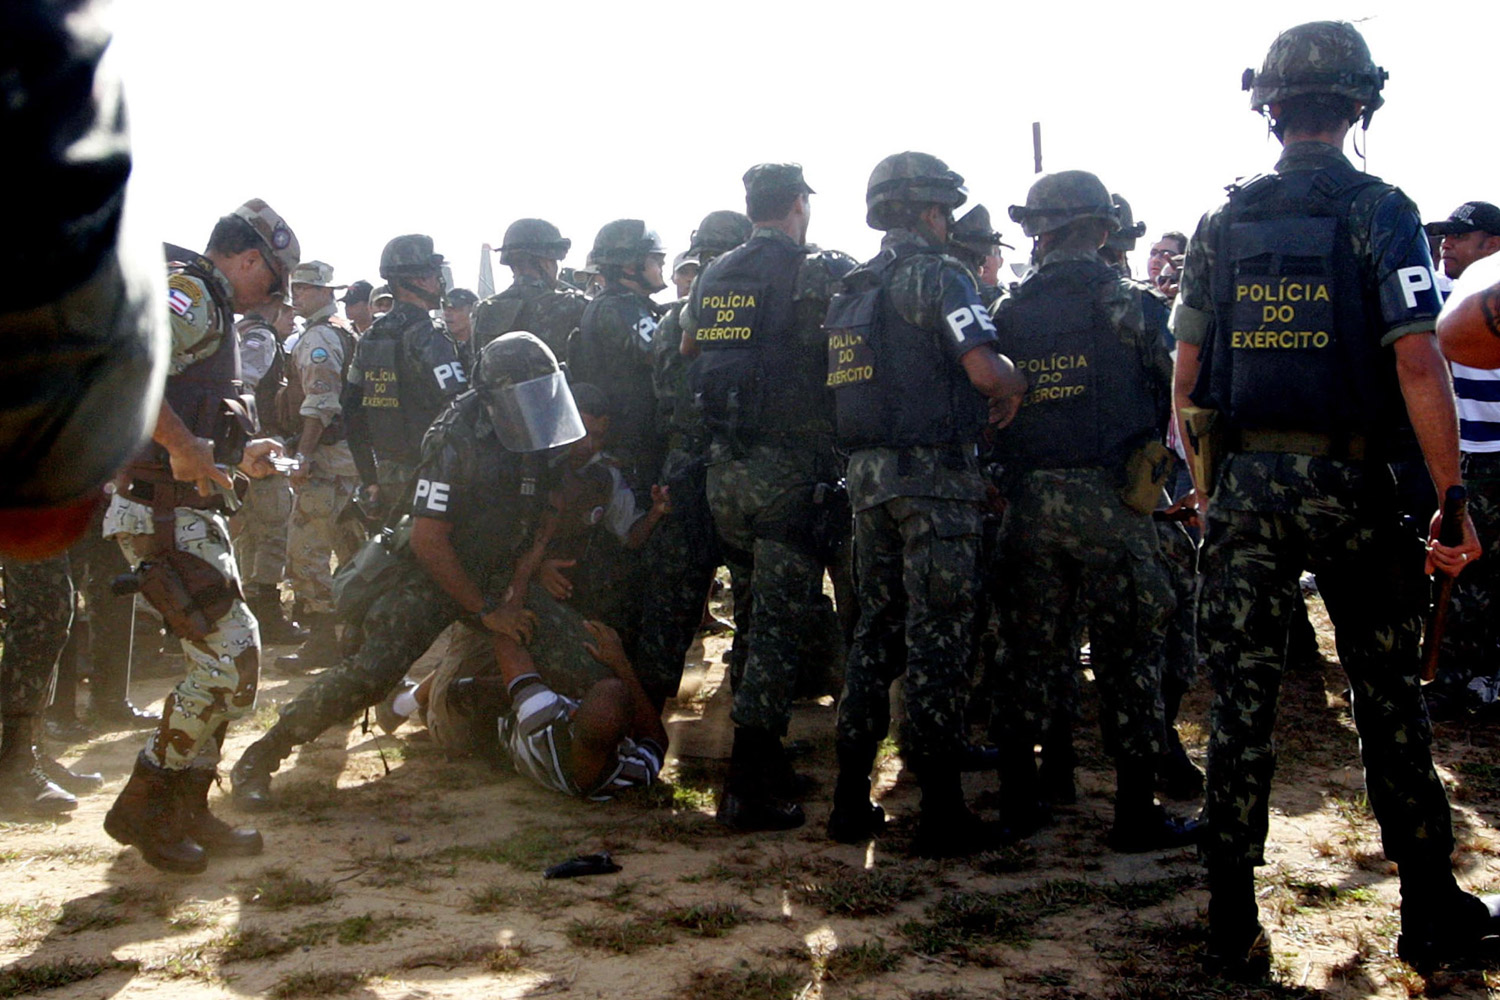 February 7, 2012. Brazilian soldiers clash with police on strike at the Legislative Assembly of Bahia in Salvador, northeastern Brazil.